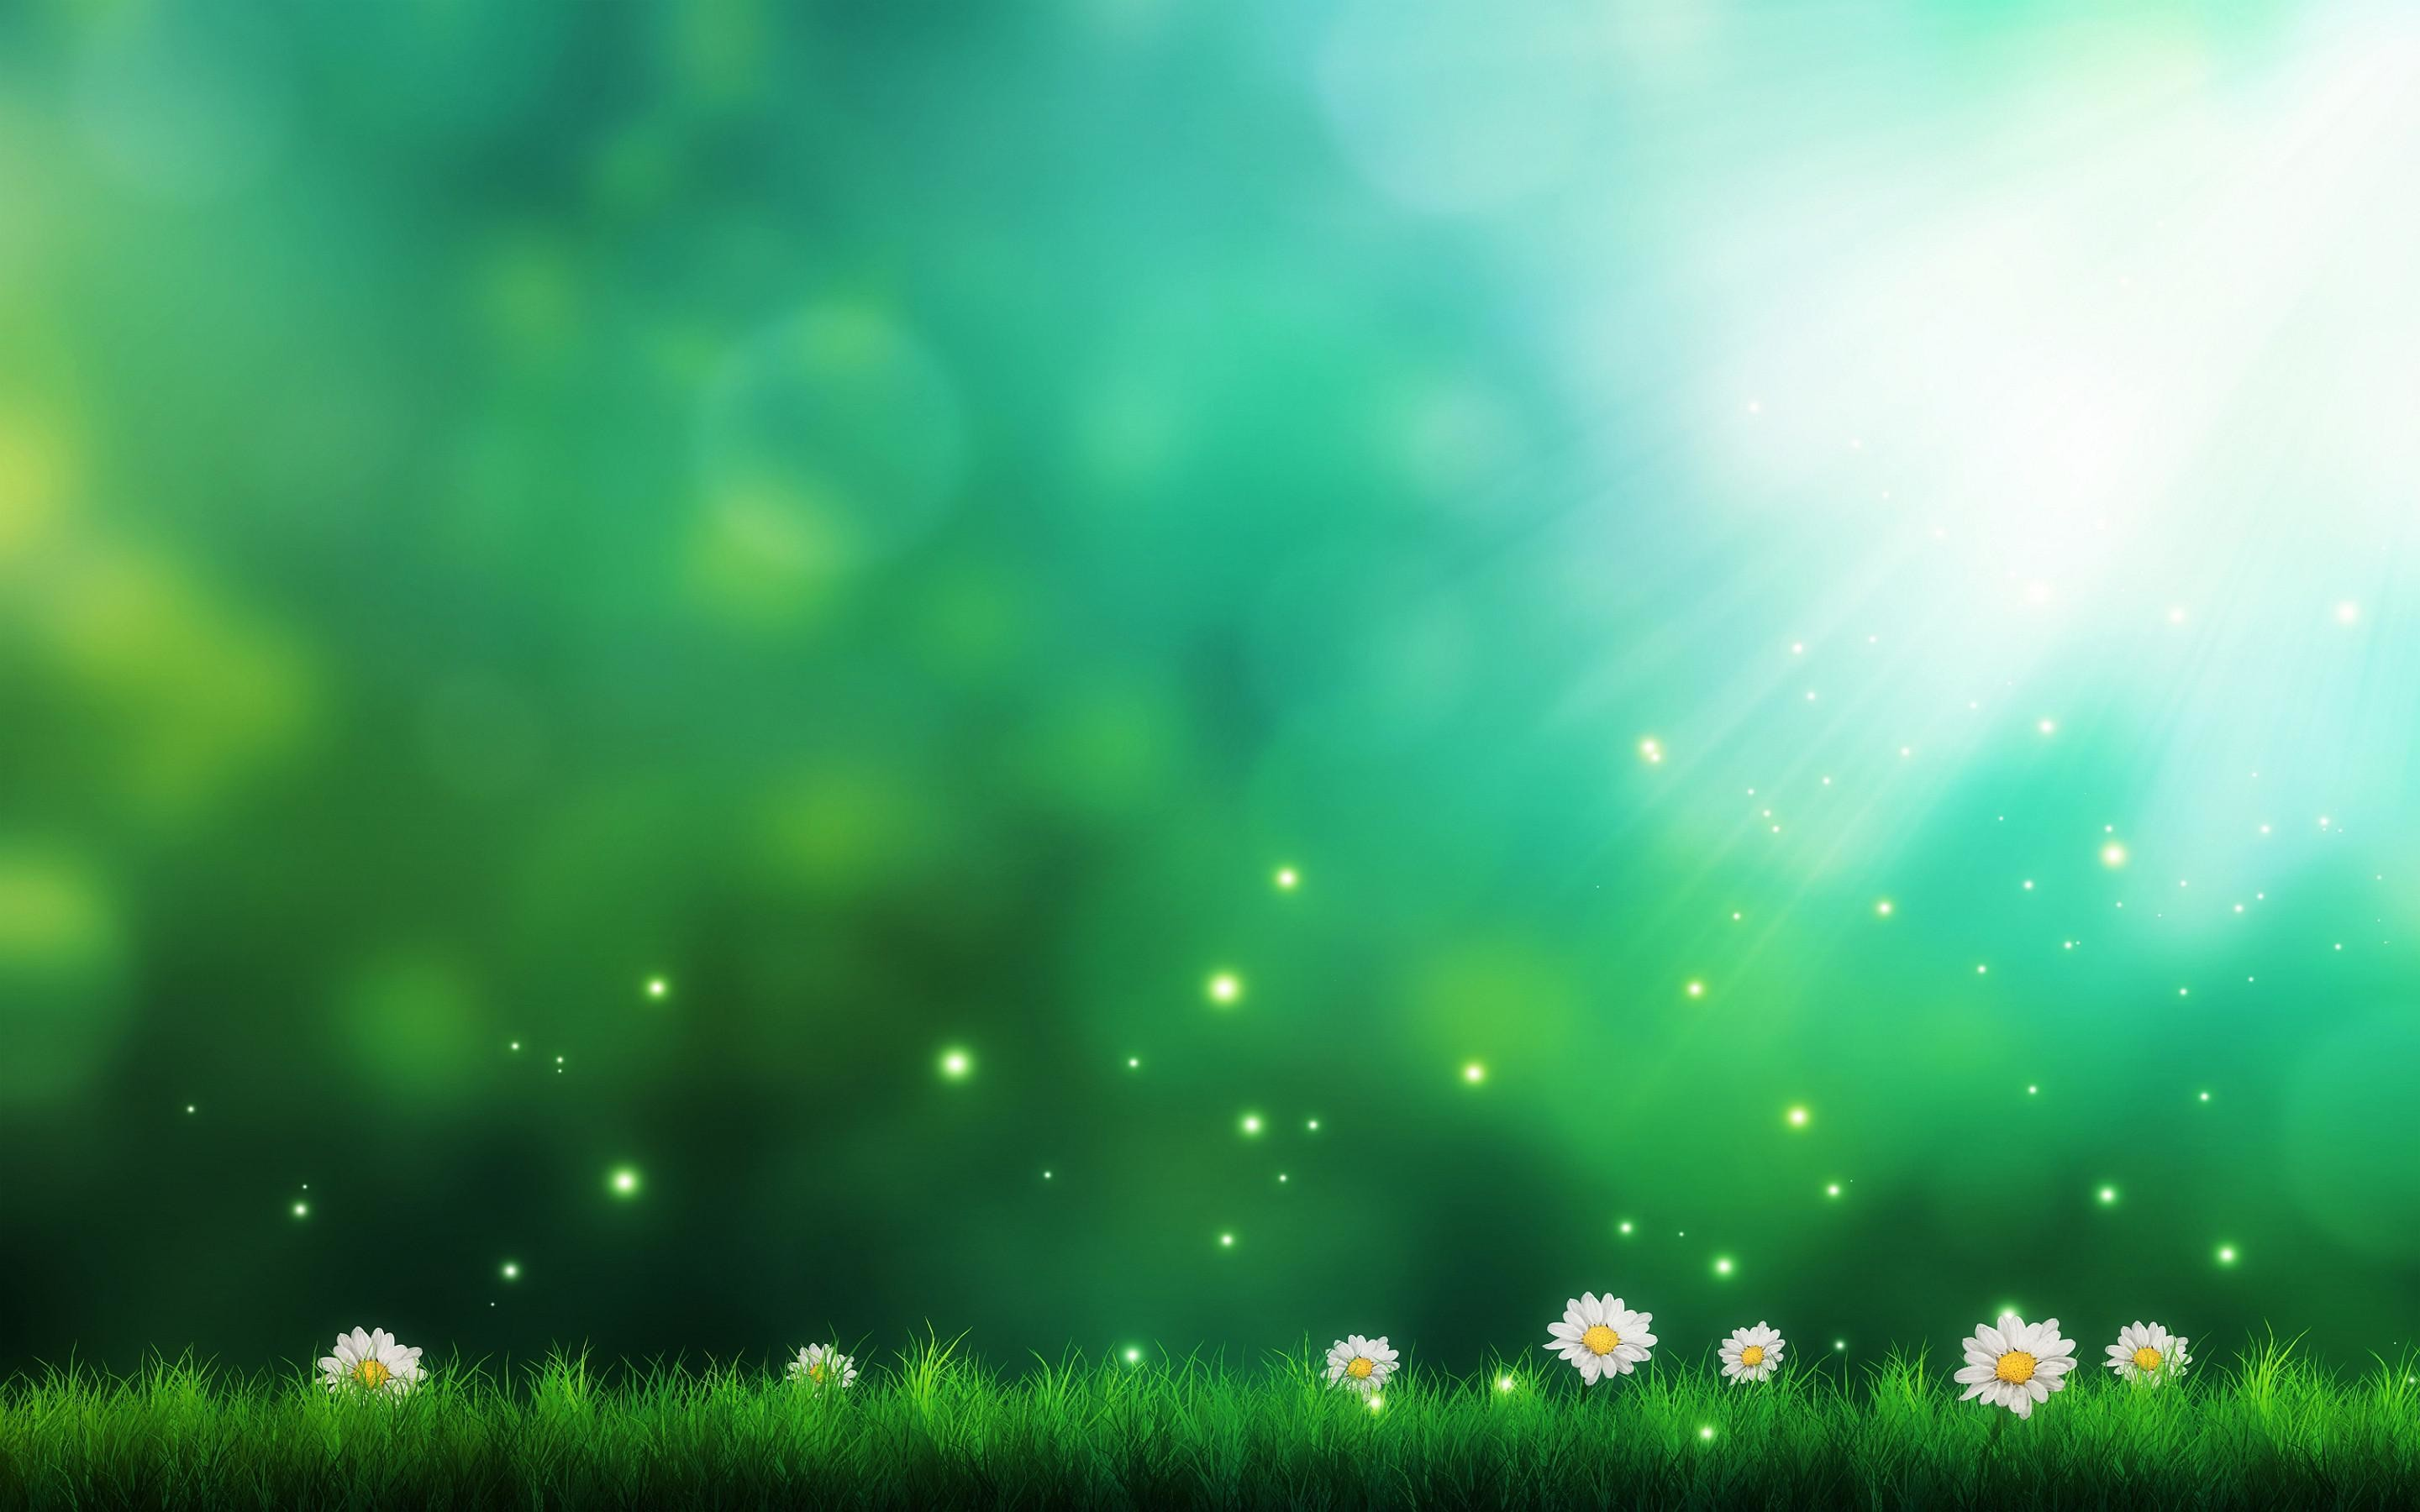 Beautiful background images 64 images 2880x1800 green beautiful background voltagebd Image collections